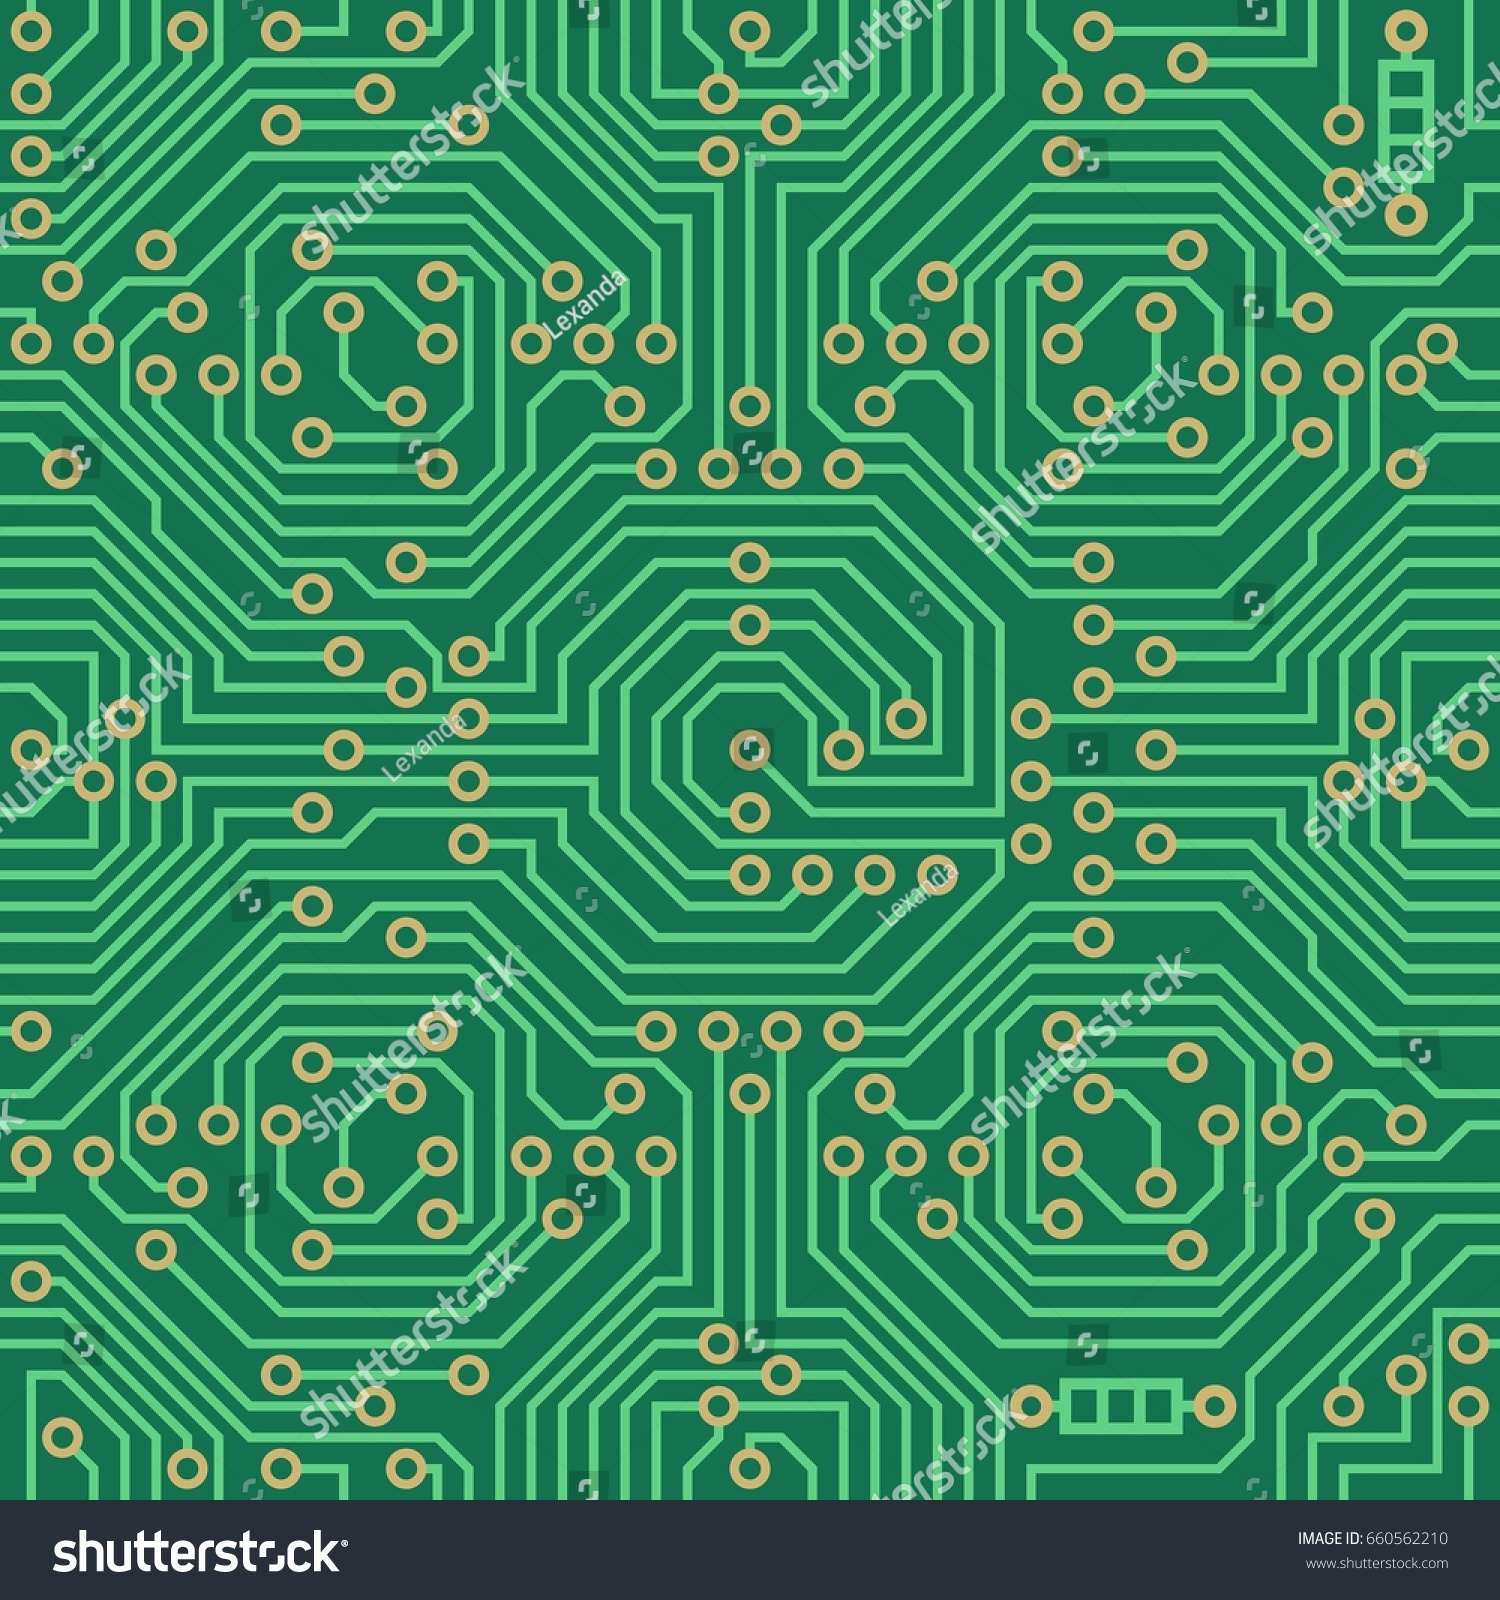 Abstract Vector Background High Tech Printed Stock Royalty Detail Of A Circuit Board Free Image With Microchip Seamless Pattern